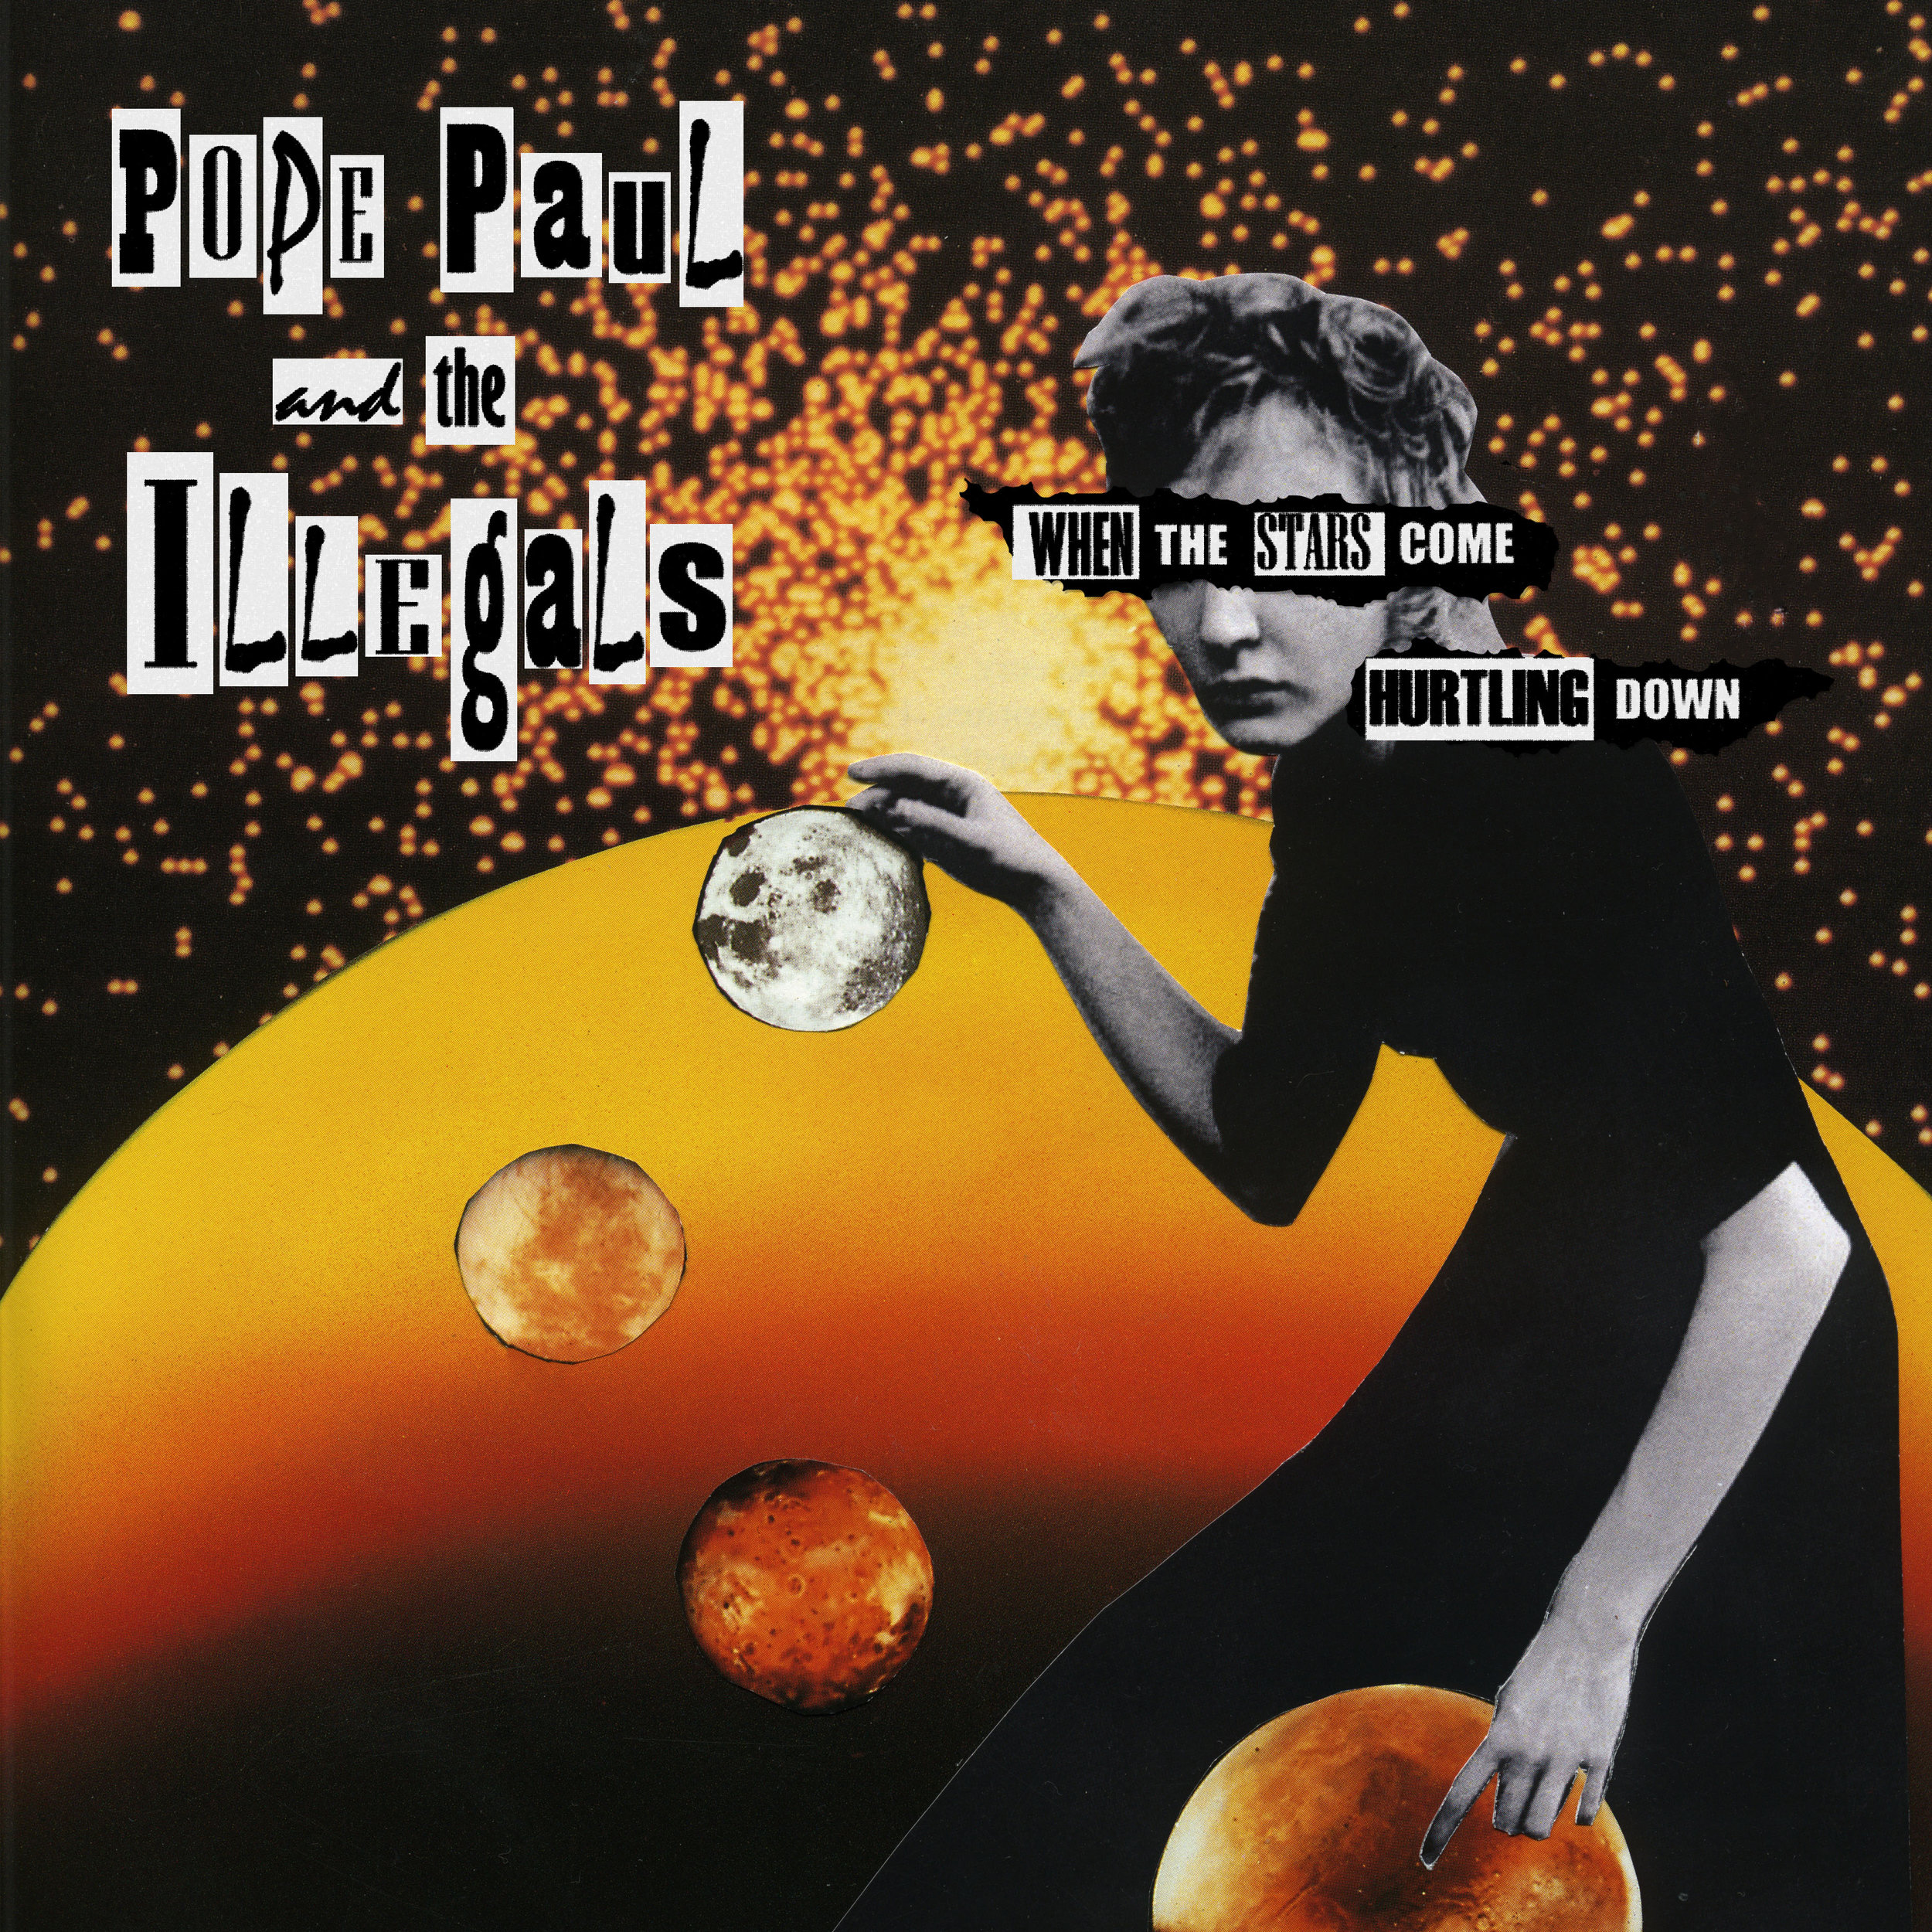 Pope Paul & The Illegals 'When The Stars Come Hurtling Down' LP  Collage by Jimbo Mathus  Layout & Text by Sara Kleinick